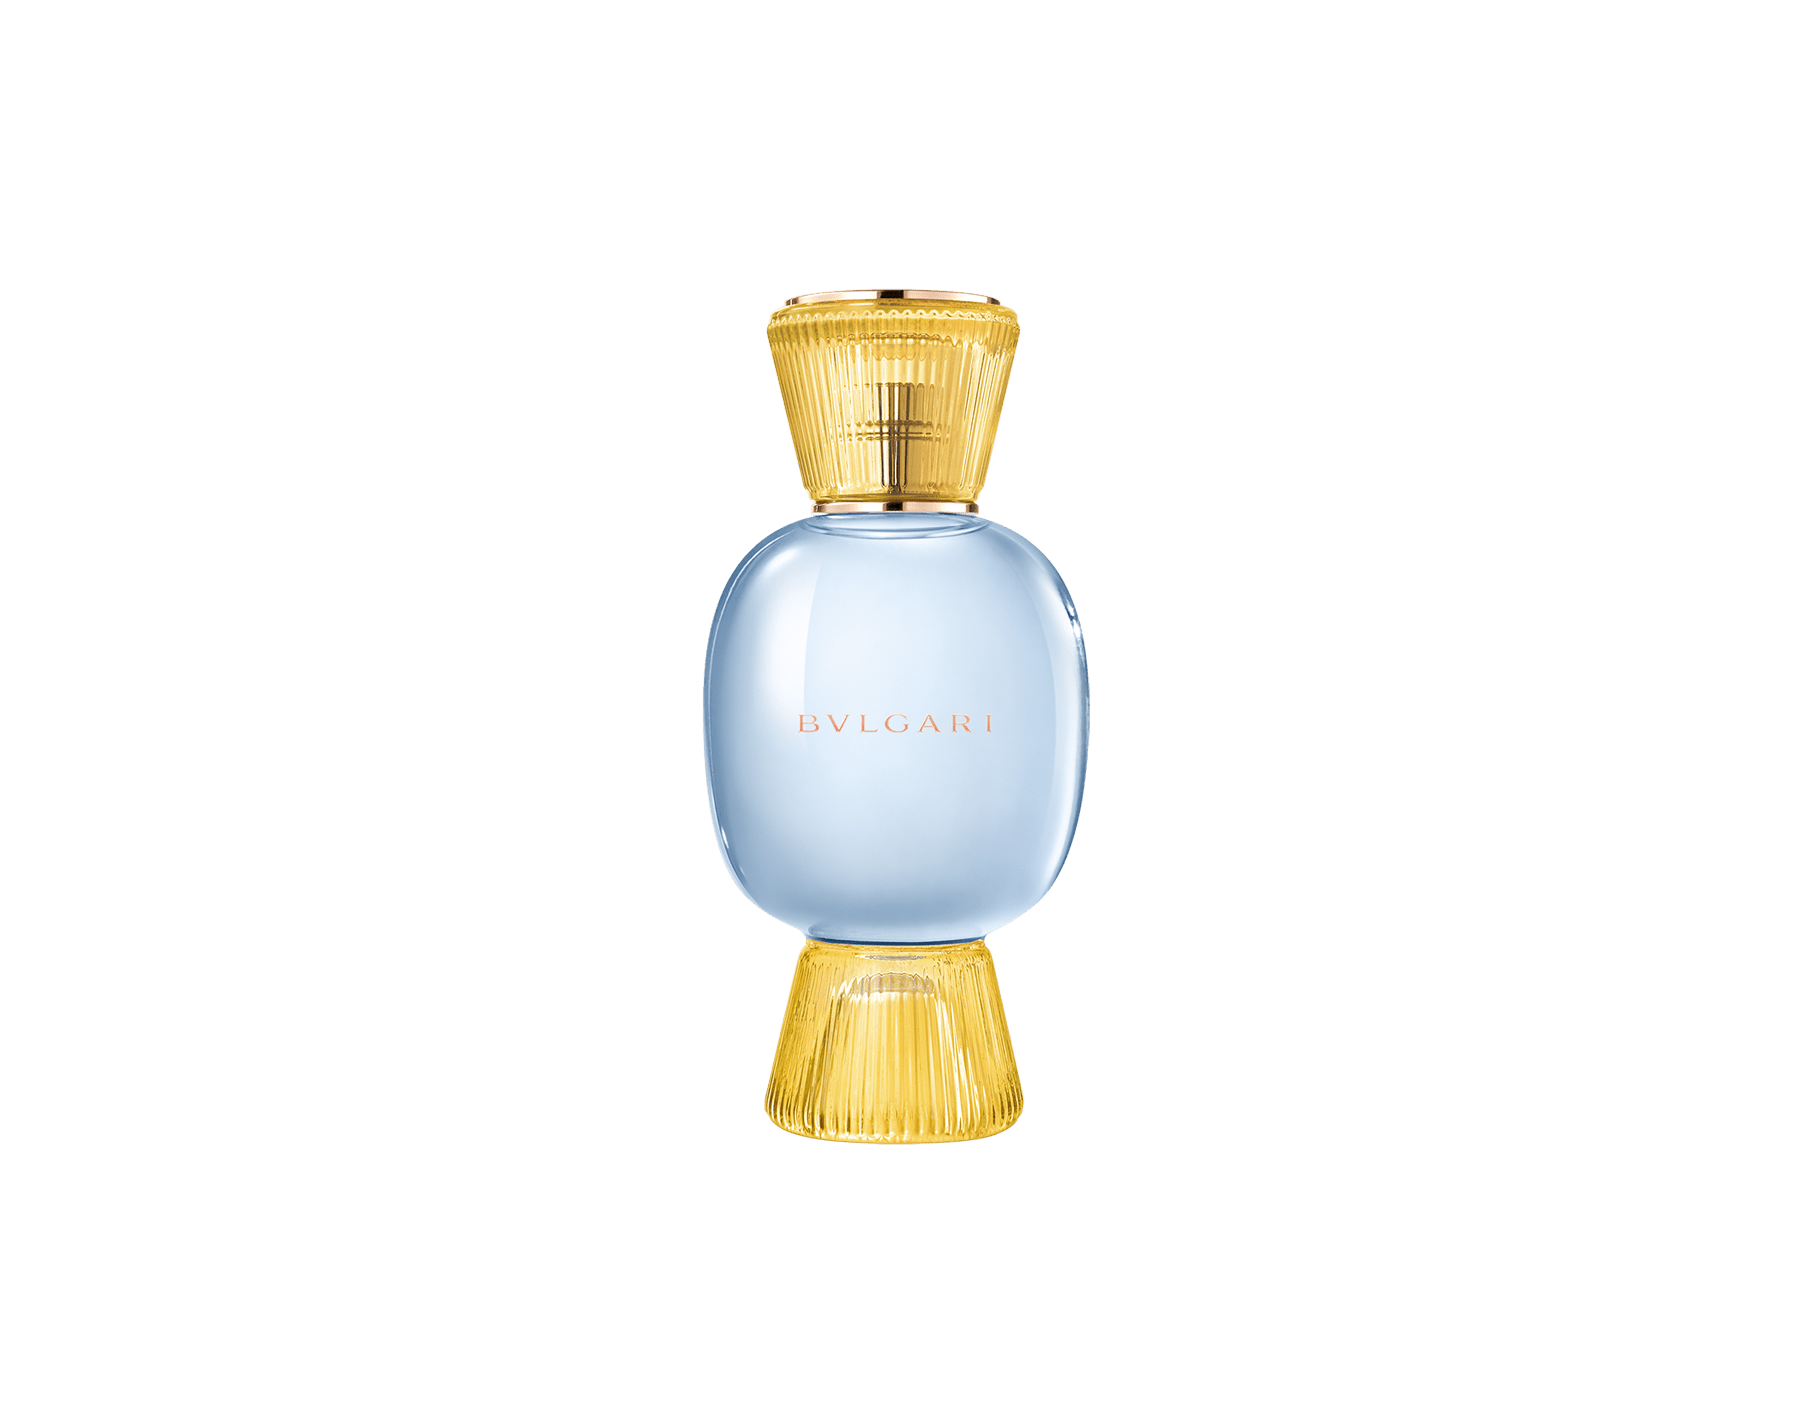 An exclusive perfume set, as bold and unique as you. The sparkling citrus Riva Solare Allegra Eau de Parfum blends with the stark sensuality of the Magnifying Patchouli Essence, creating an irresistible personalised women's perfume. Perfume-Set-Riva-Solare-Eau-de-Parfum-and-Patchouli-Magnifying image 2